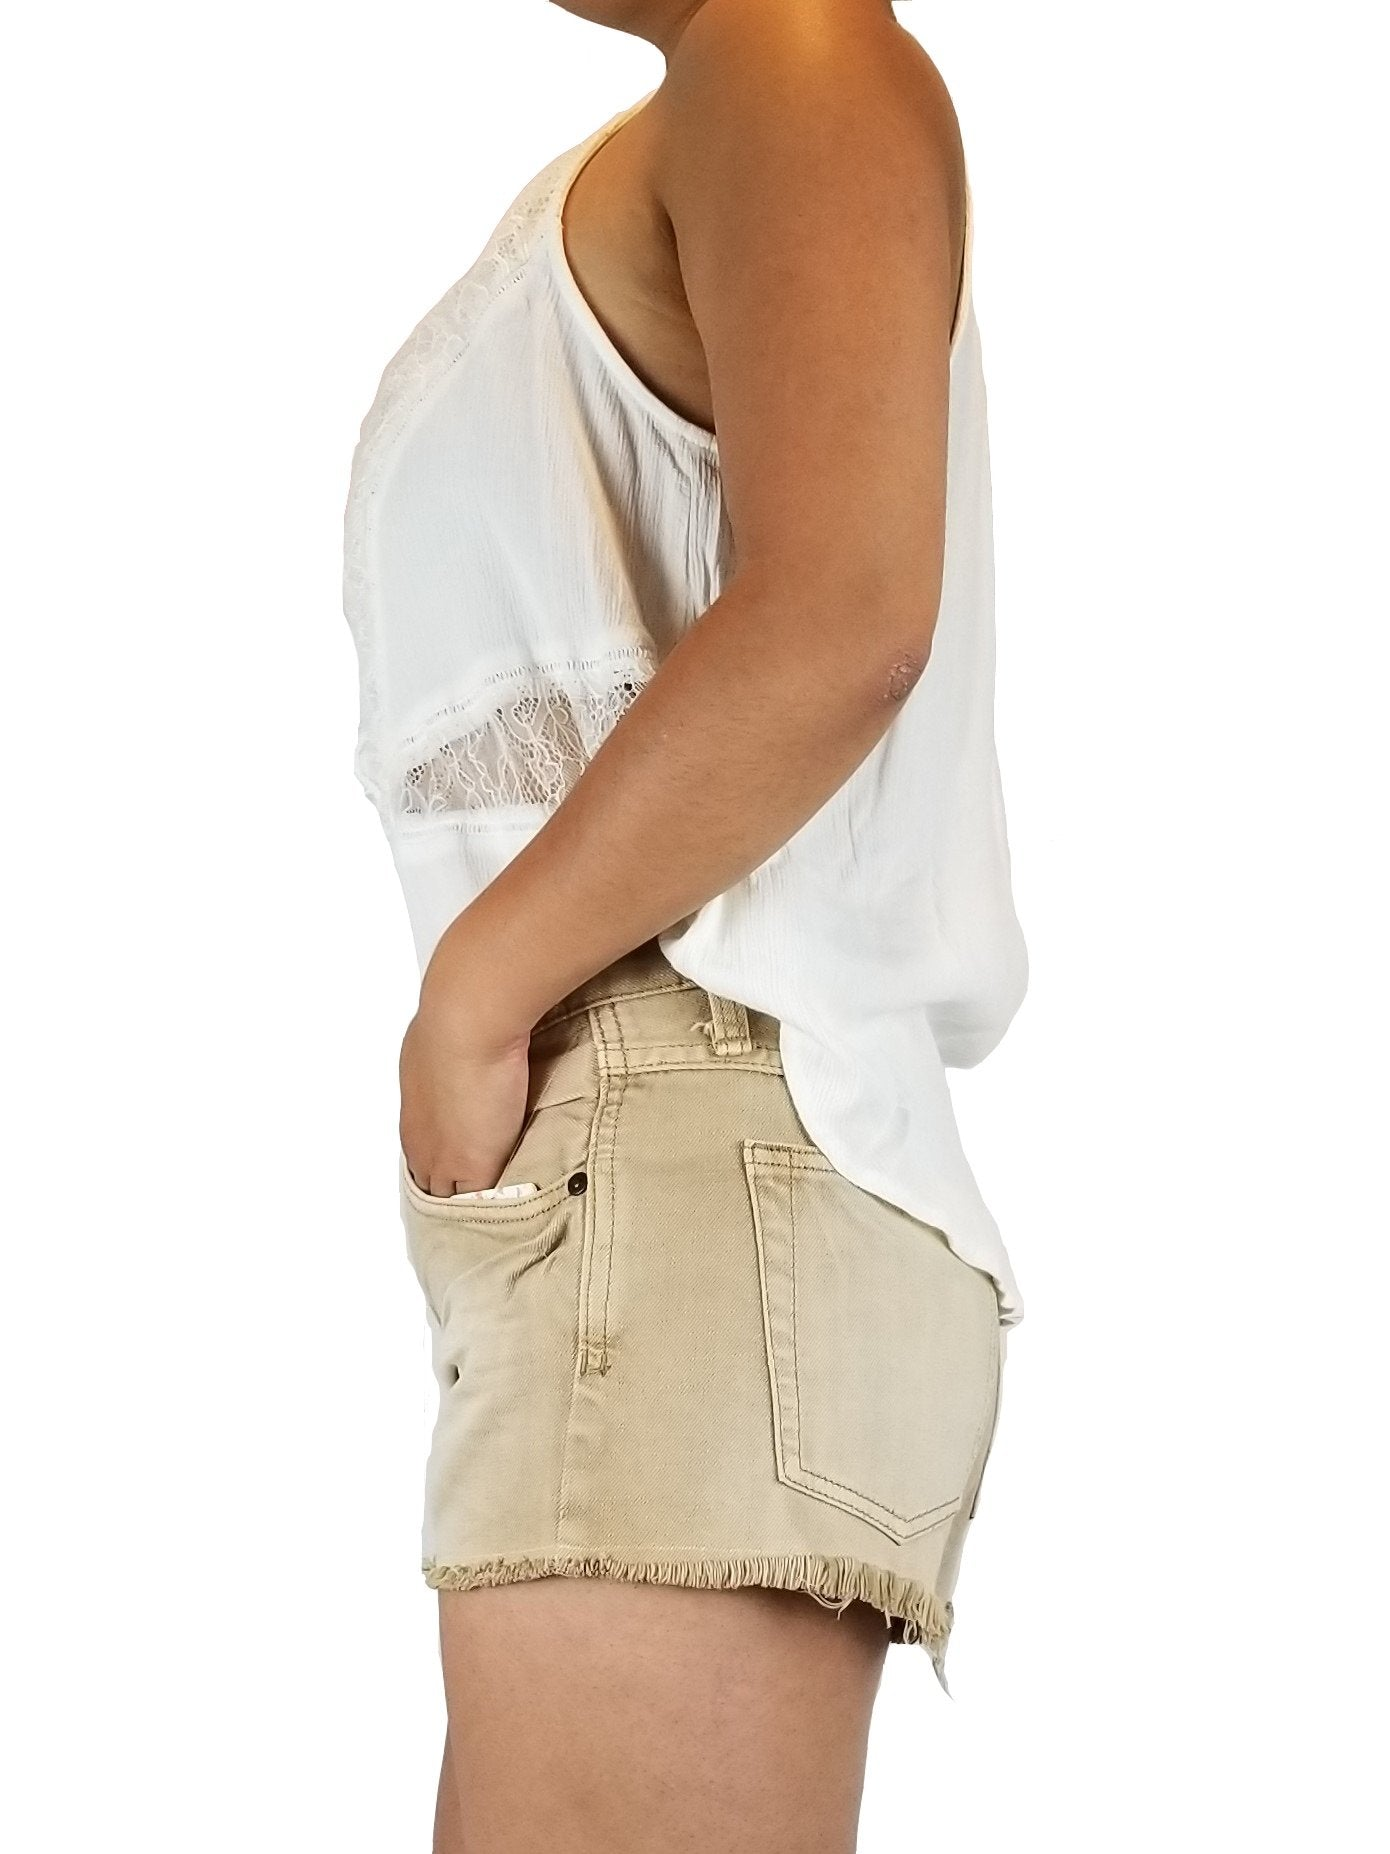 Free people Khaki jean shorts, Roses are red. Shorts are short. Snug fit, Yellow, 100% Cotton, Shorts, jean shorts, brand new, fashionable shorts